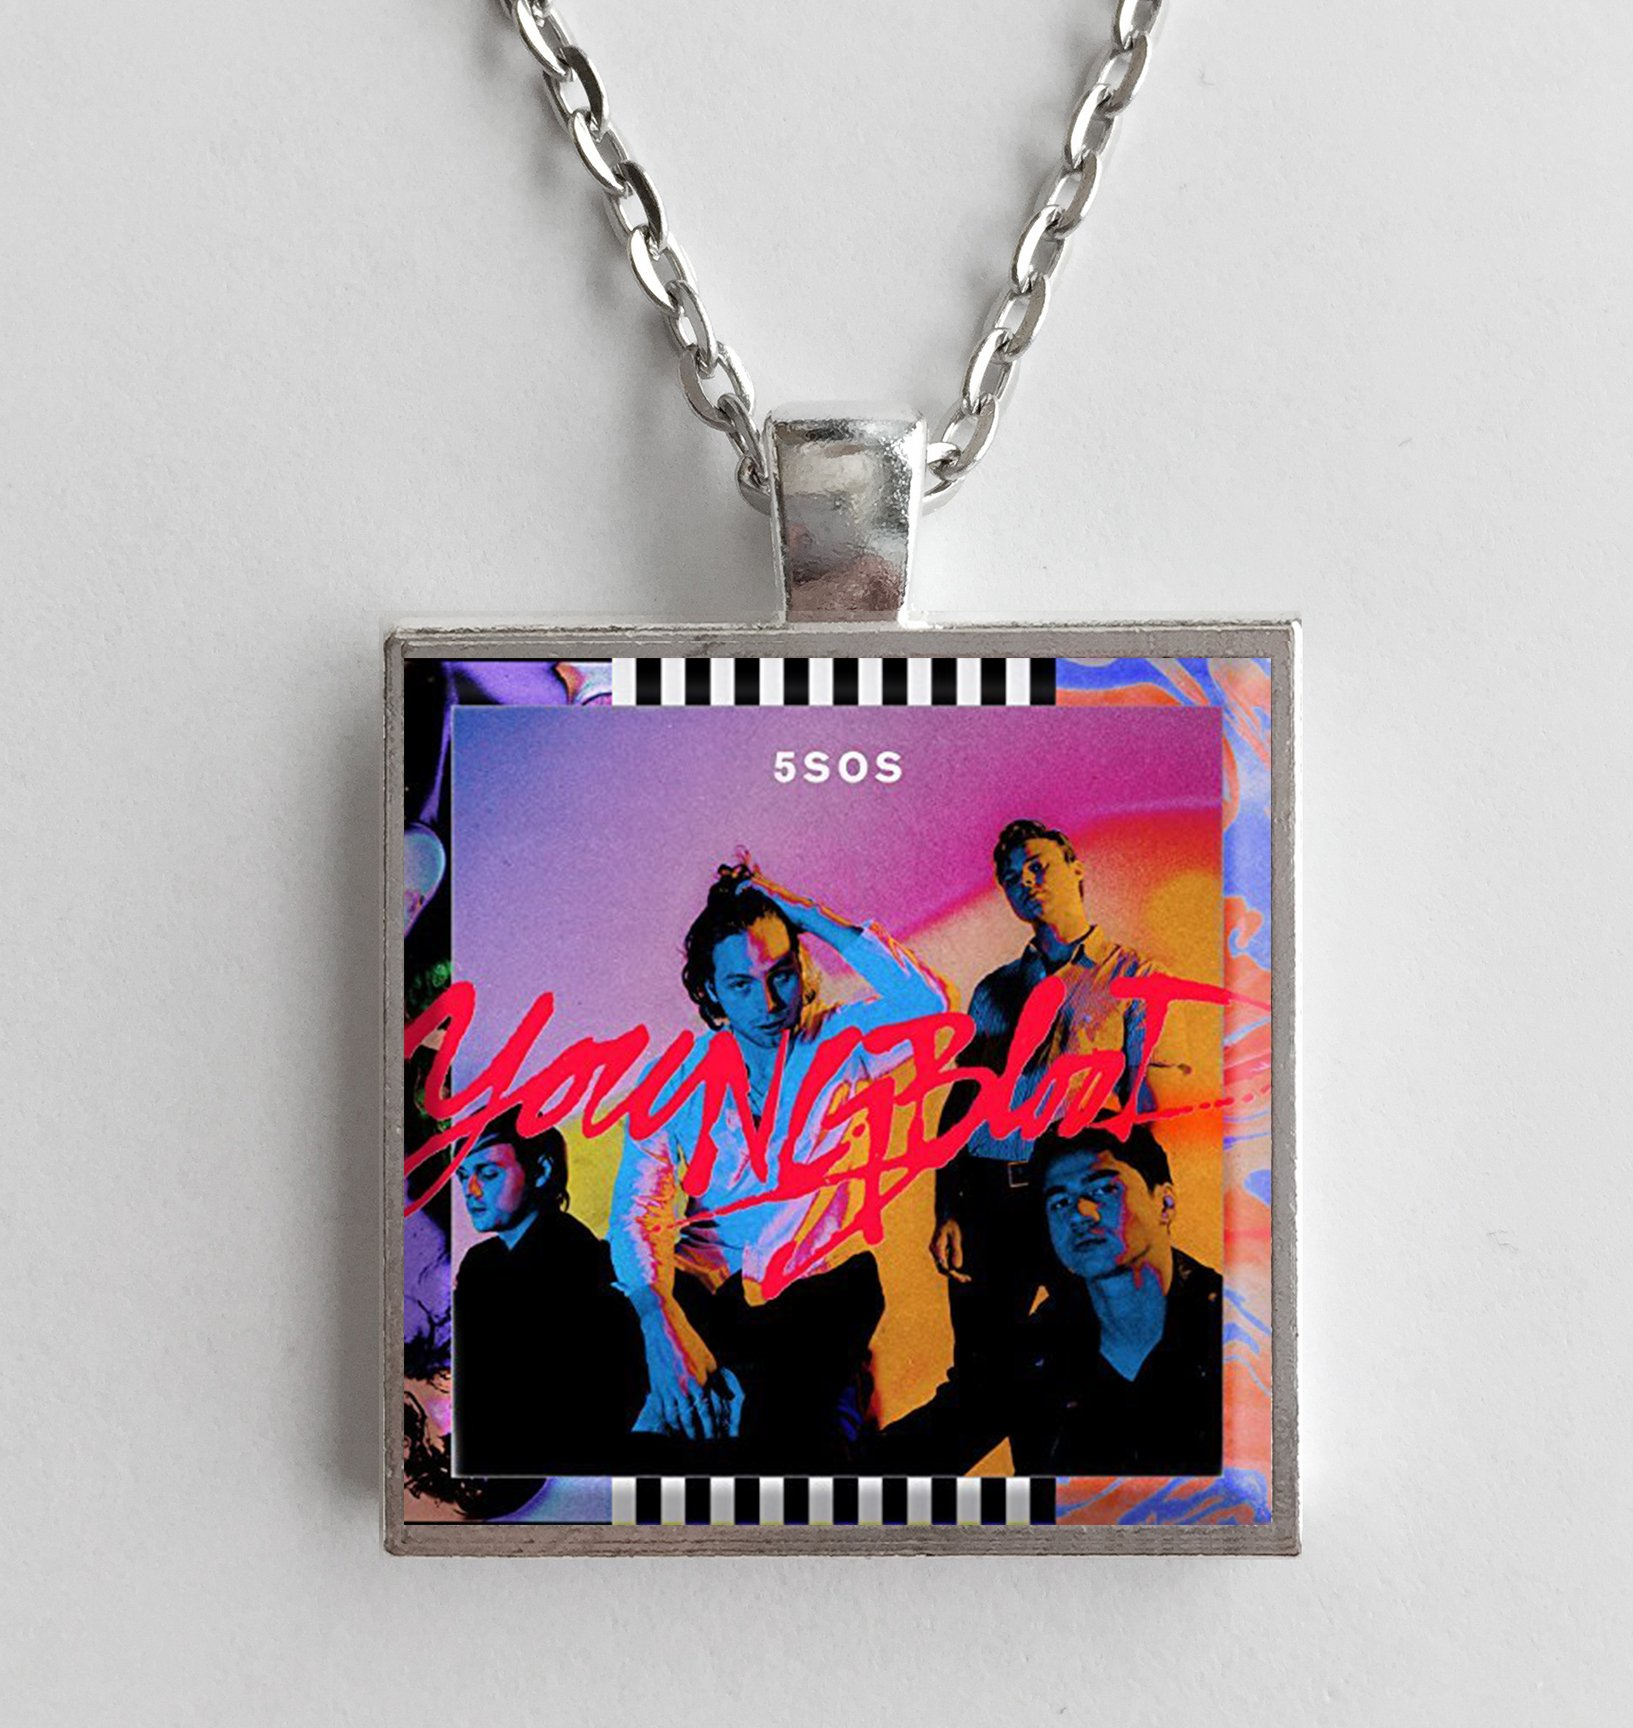 5 Seconds Of Summer Youngblood Album Cover Art Pendant